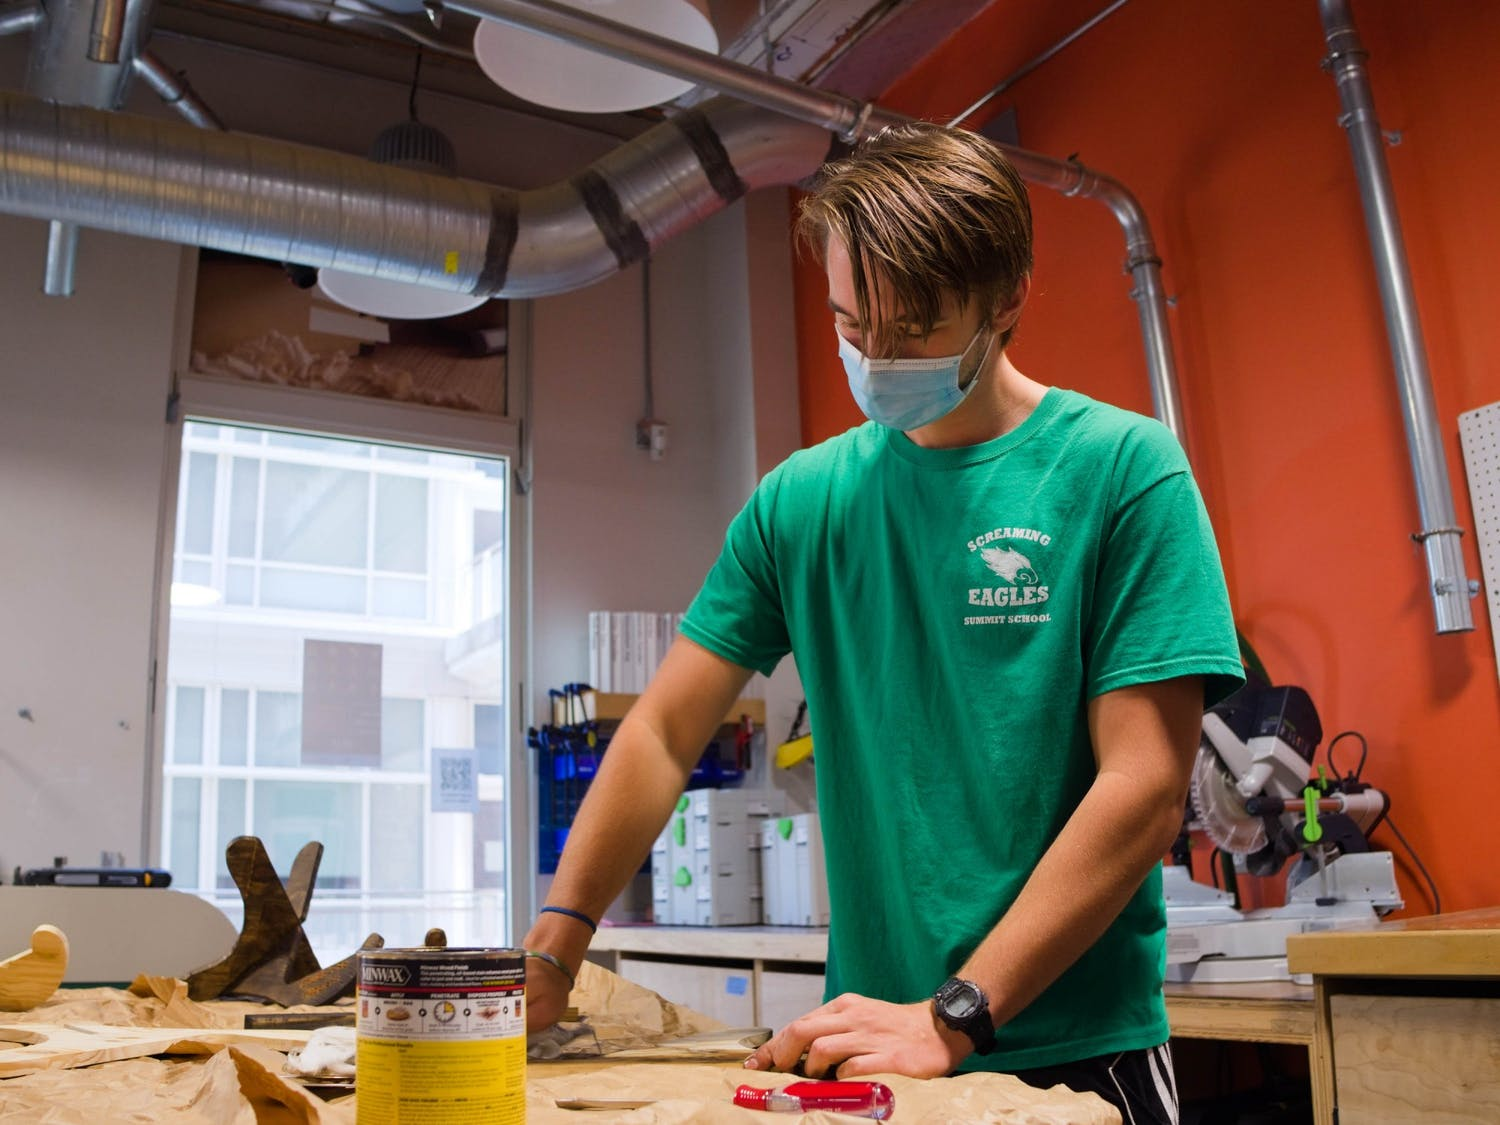 Junior Jimmy Toole finishes a wood piece for a guitar stand in the Murray Makerspace on Saturday, Oct. 31, 2020.